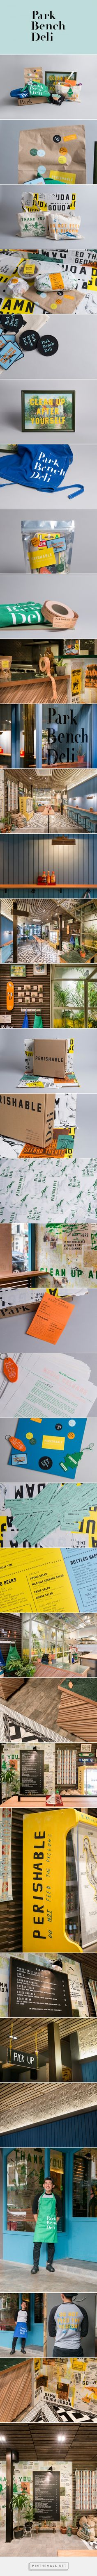 Park Bench Deli — Branding & Space on Behance - created via https://pinthemall.net